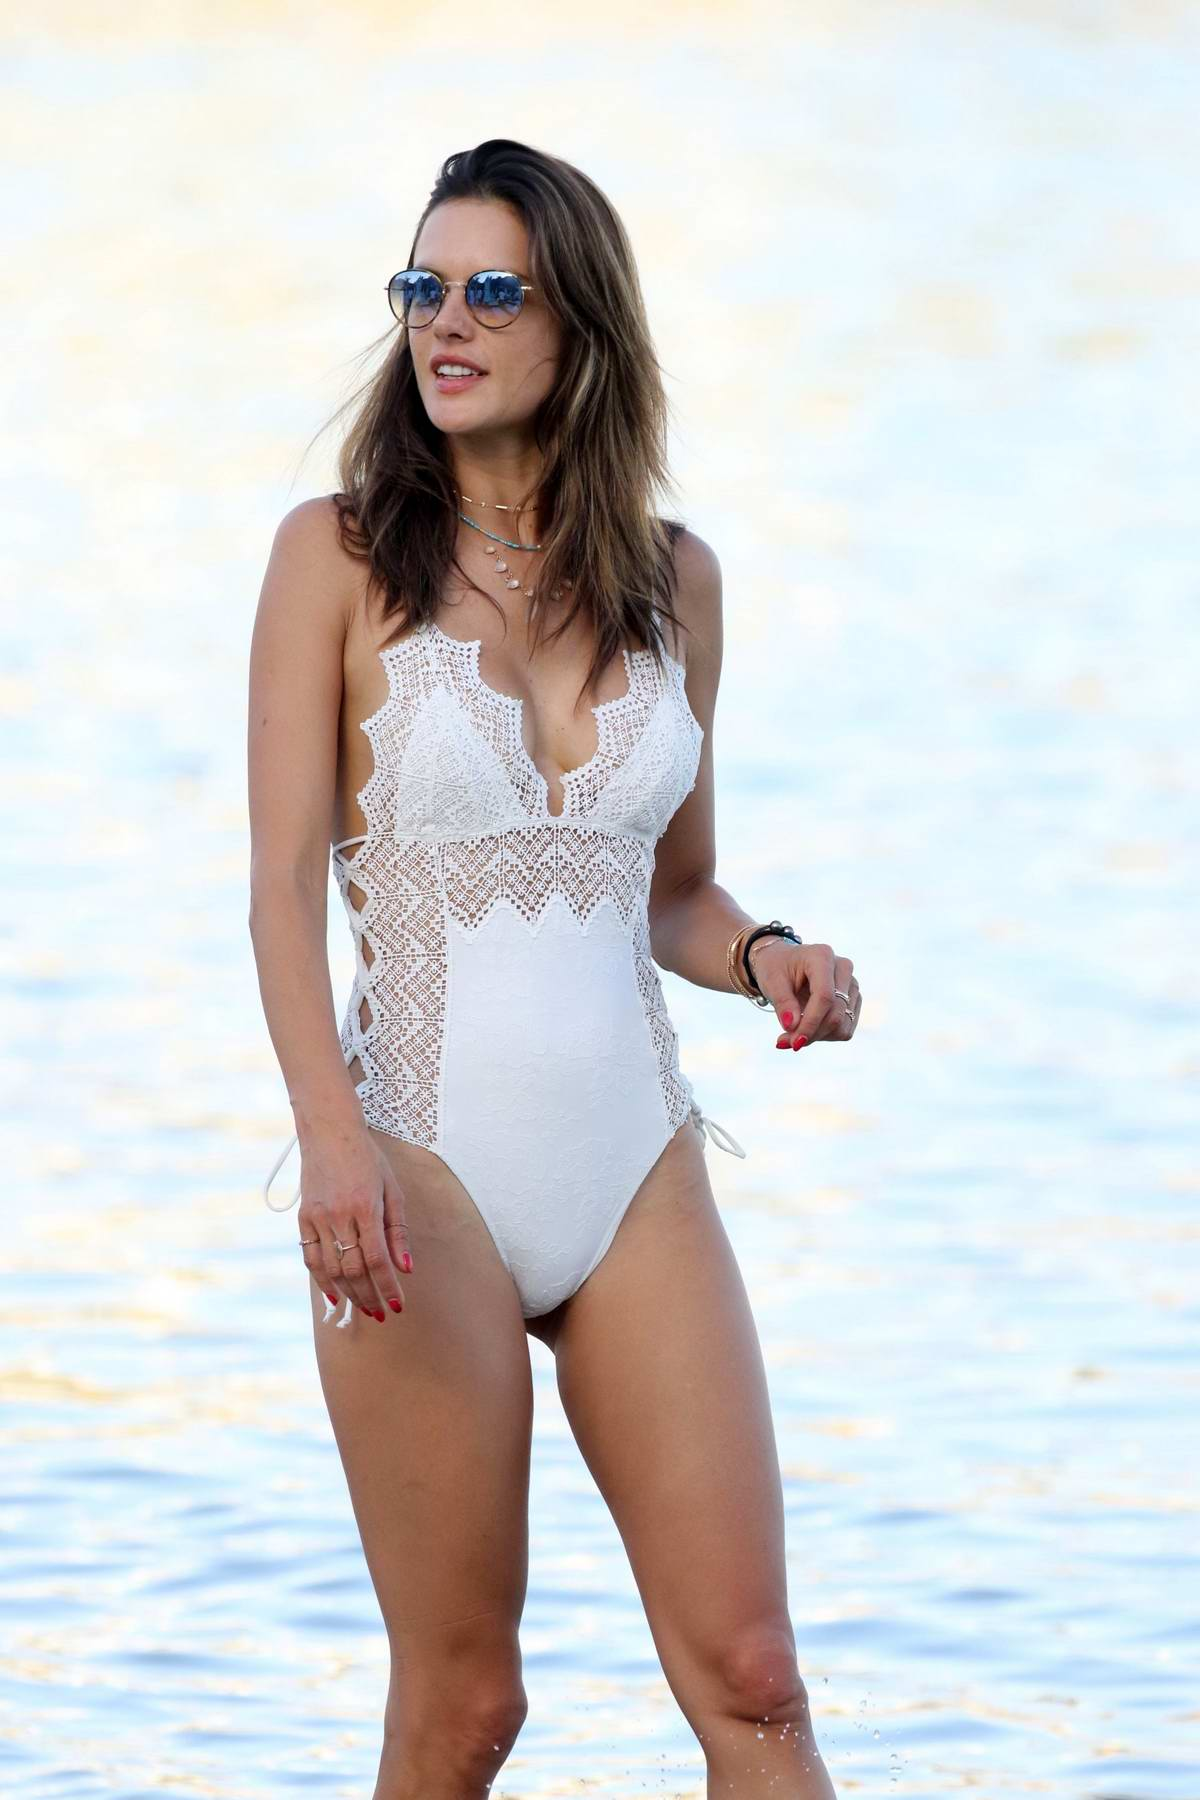 alessandra-ambrosio-in-white-swimsuit-enjoying-vacation-with-her-husband-on-the-beach-in-mykonos-greece-020717_1.jpg